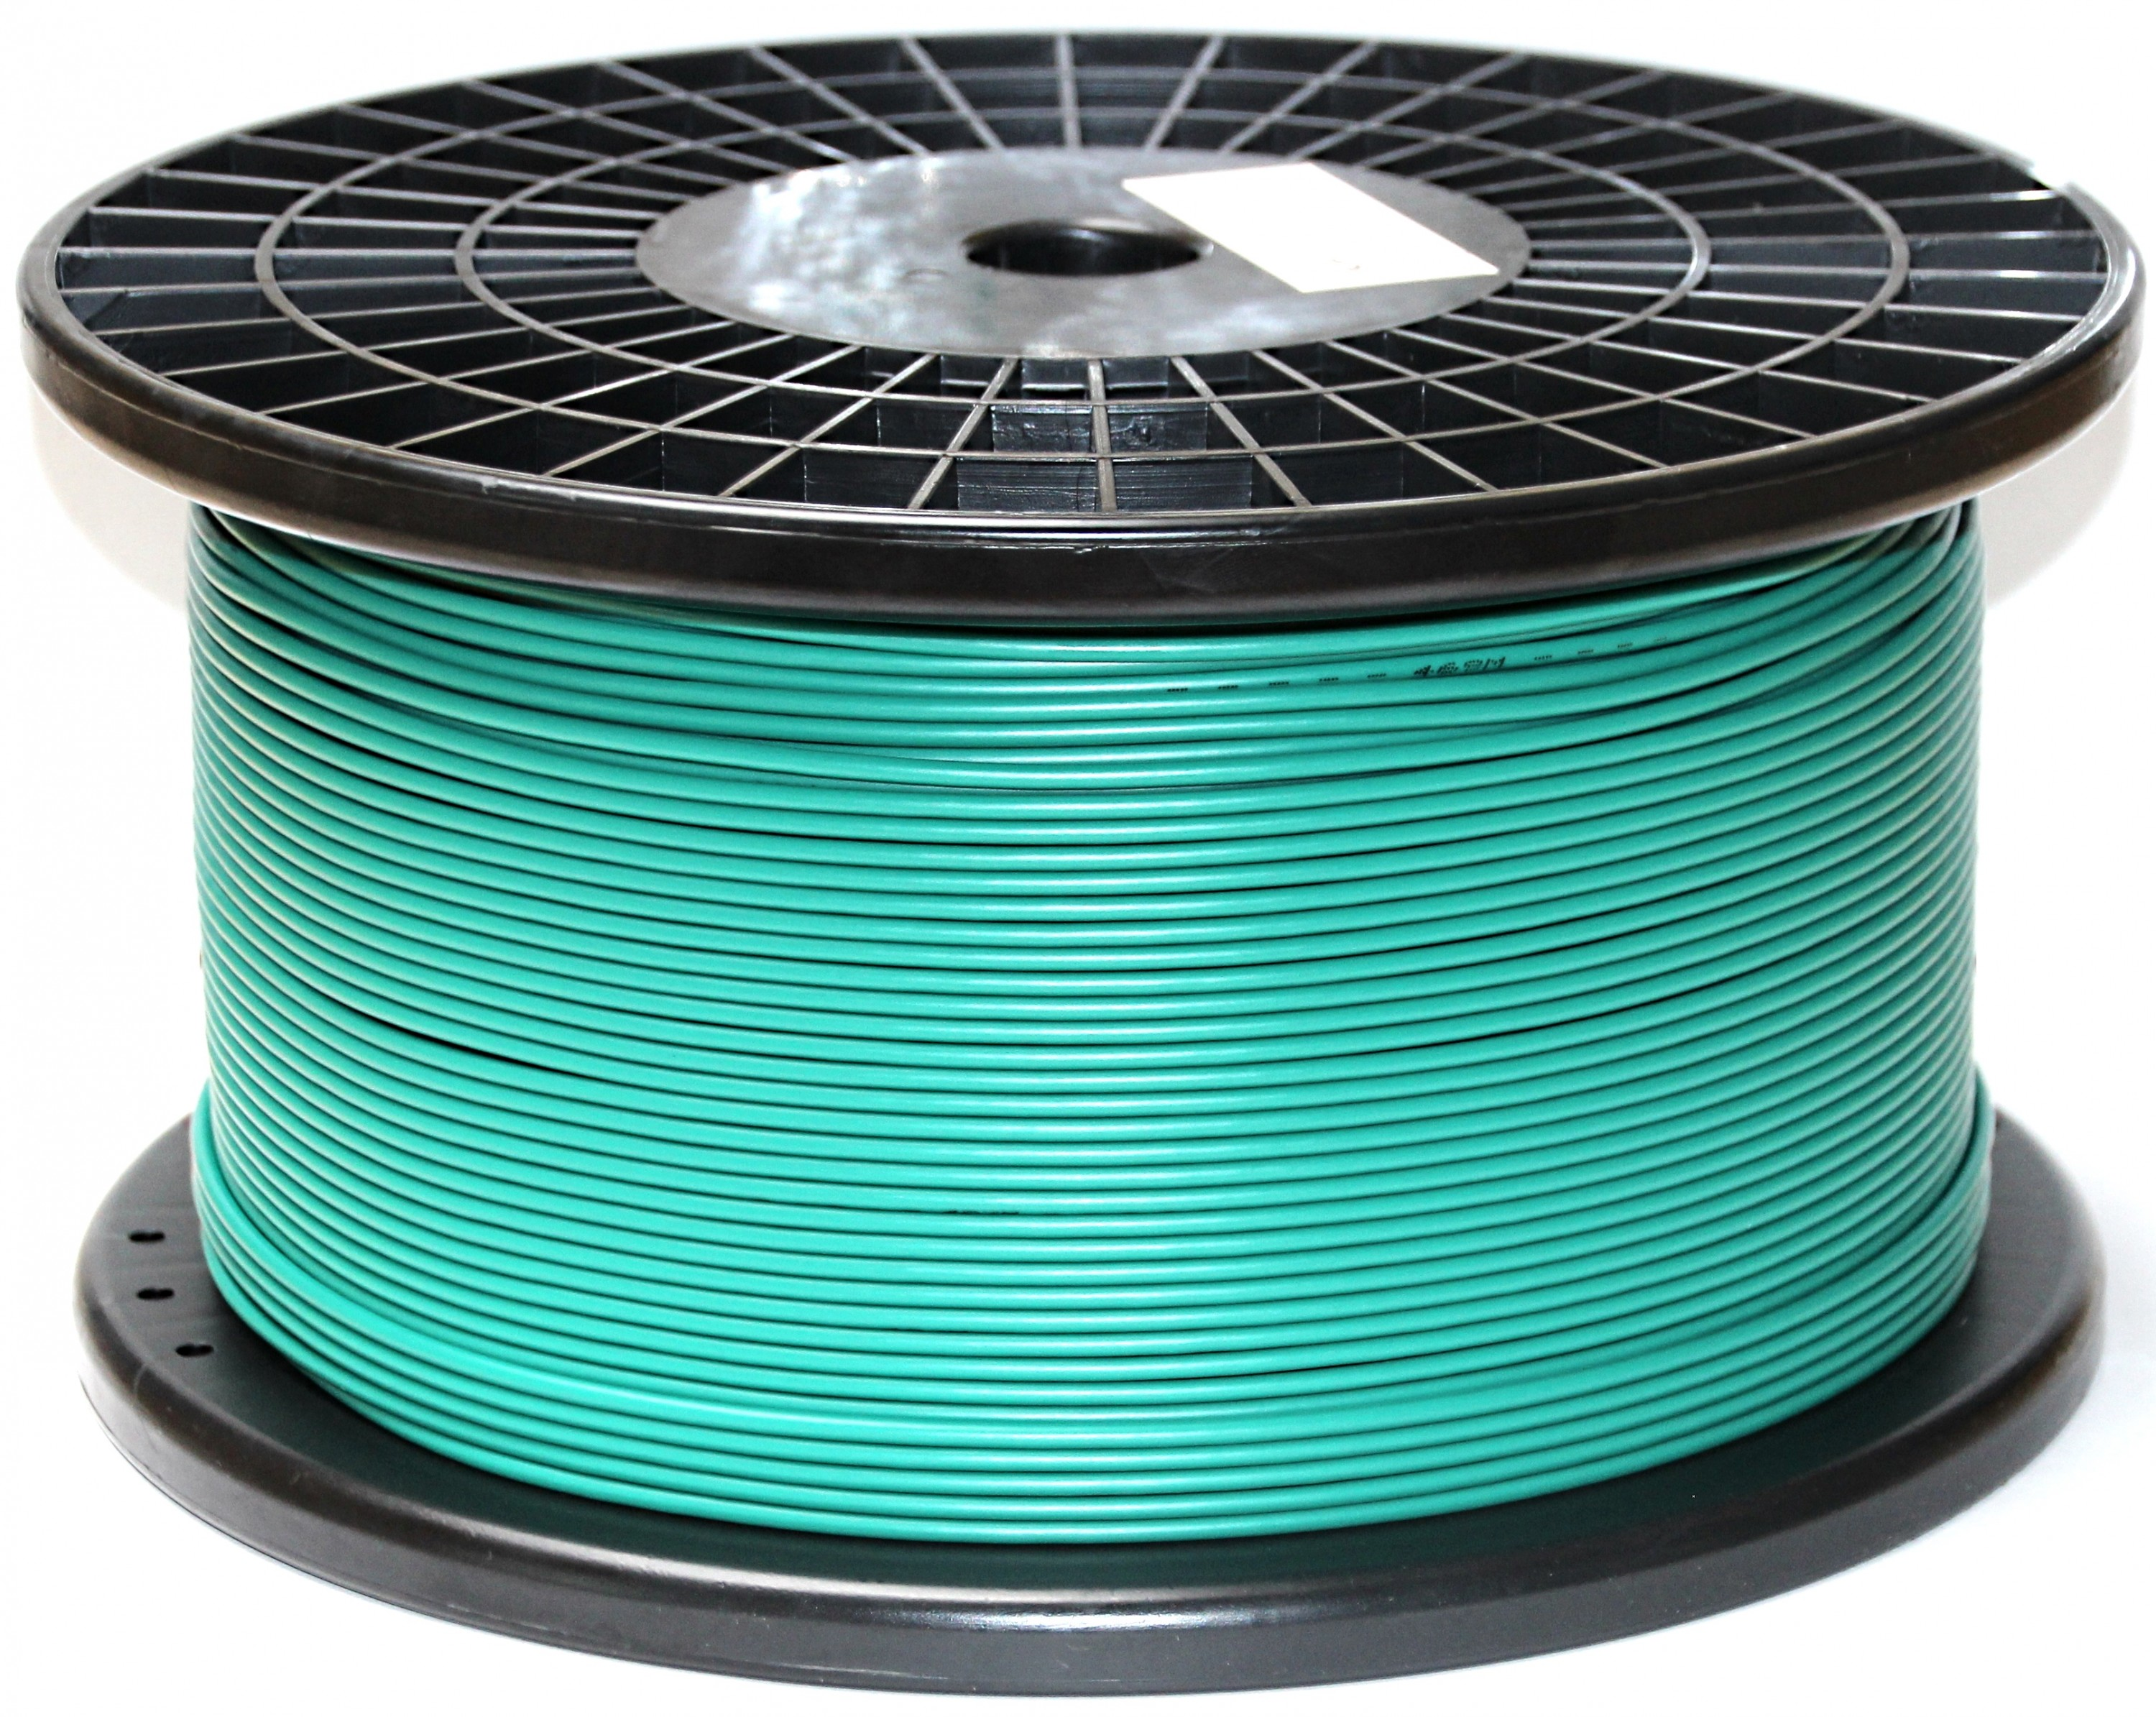 genisys Boundary cable 25m Worx Landroid WG754-WG799 boundary wire /Ø2,7mm